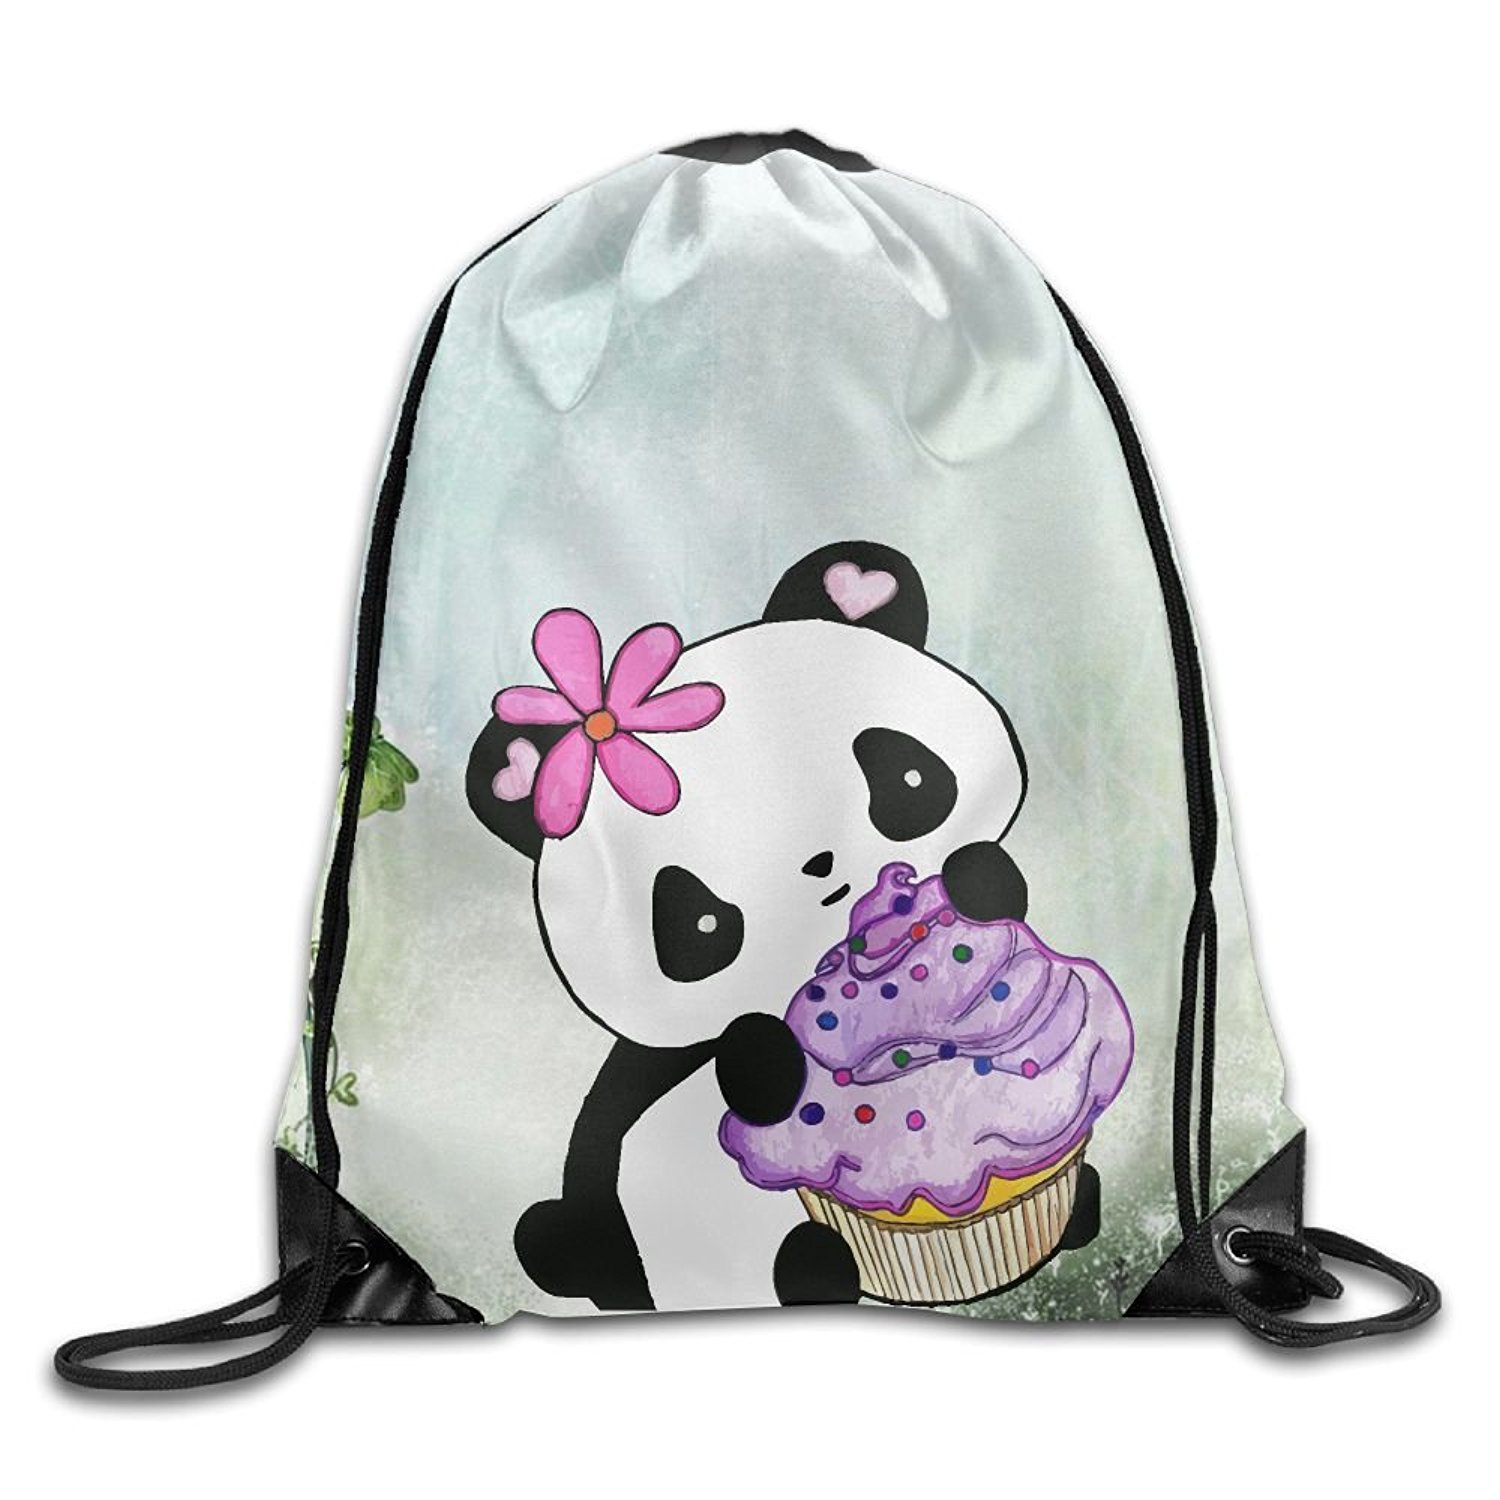 Get Quotations · Panda Bear Cupcake Unisex Drawstring Backpack Travel  Sports Bag Drawstring Beam Port Backpack. c1a3320546c9b